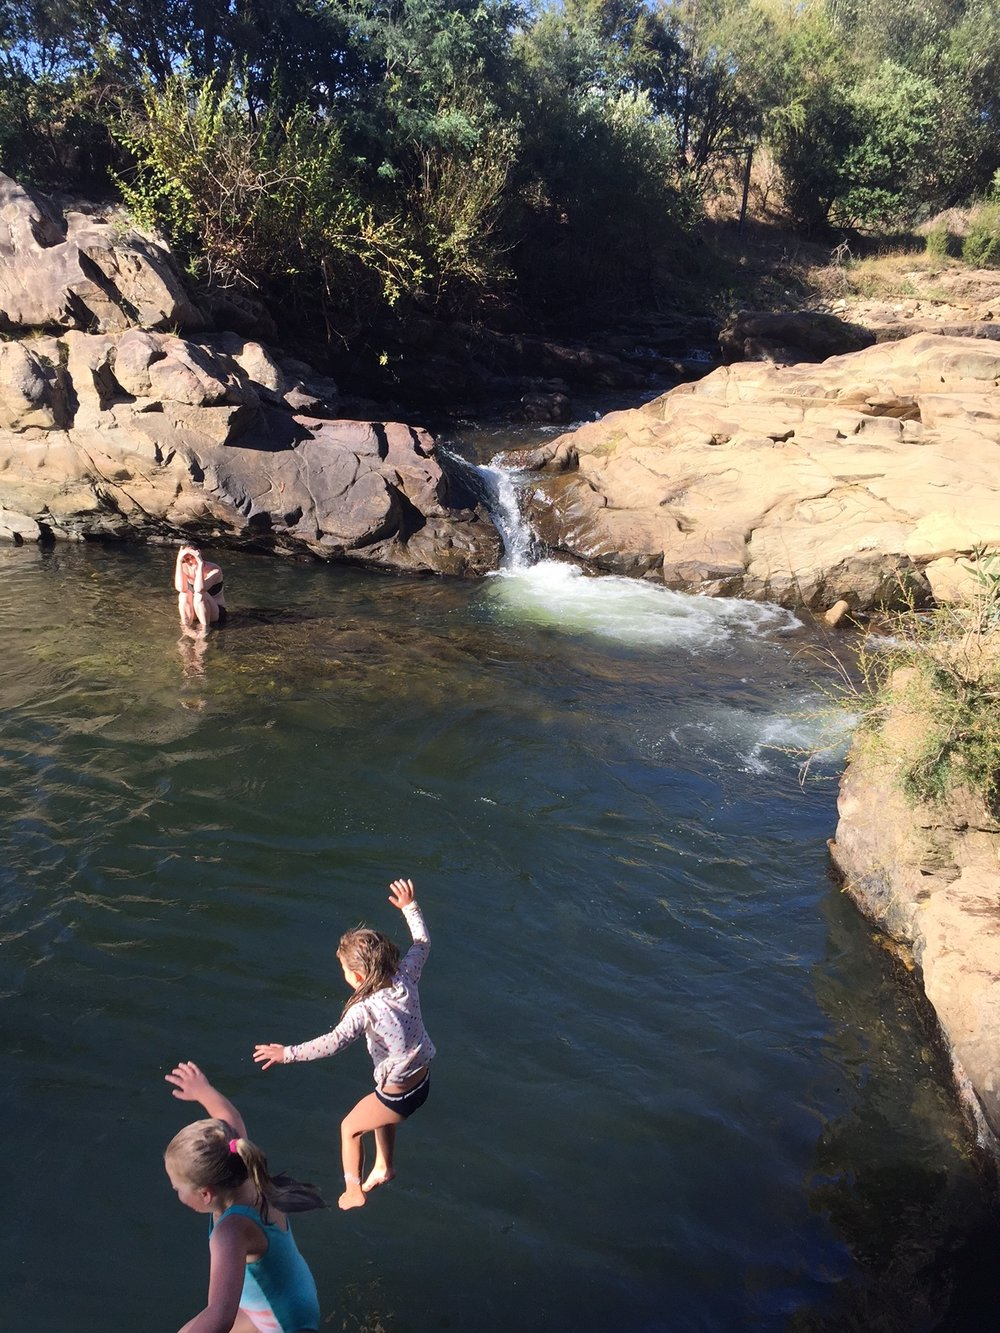 Rock jumping at Sinclairs waterhole